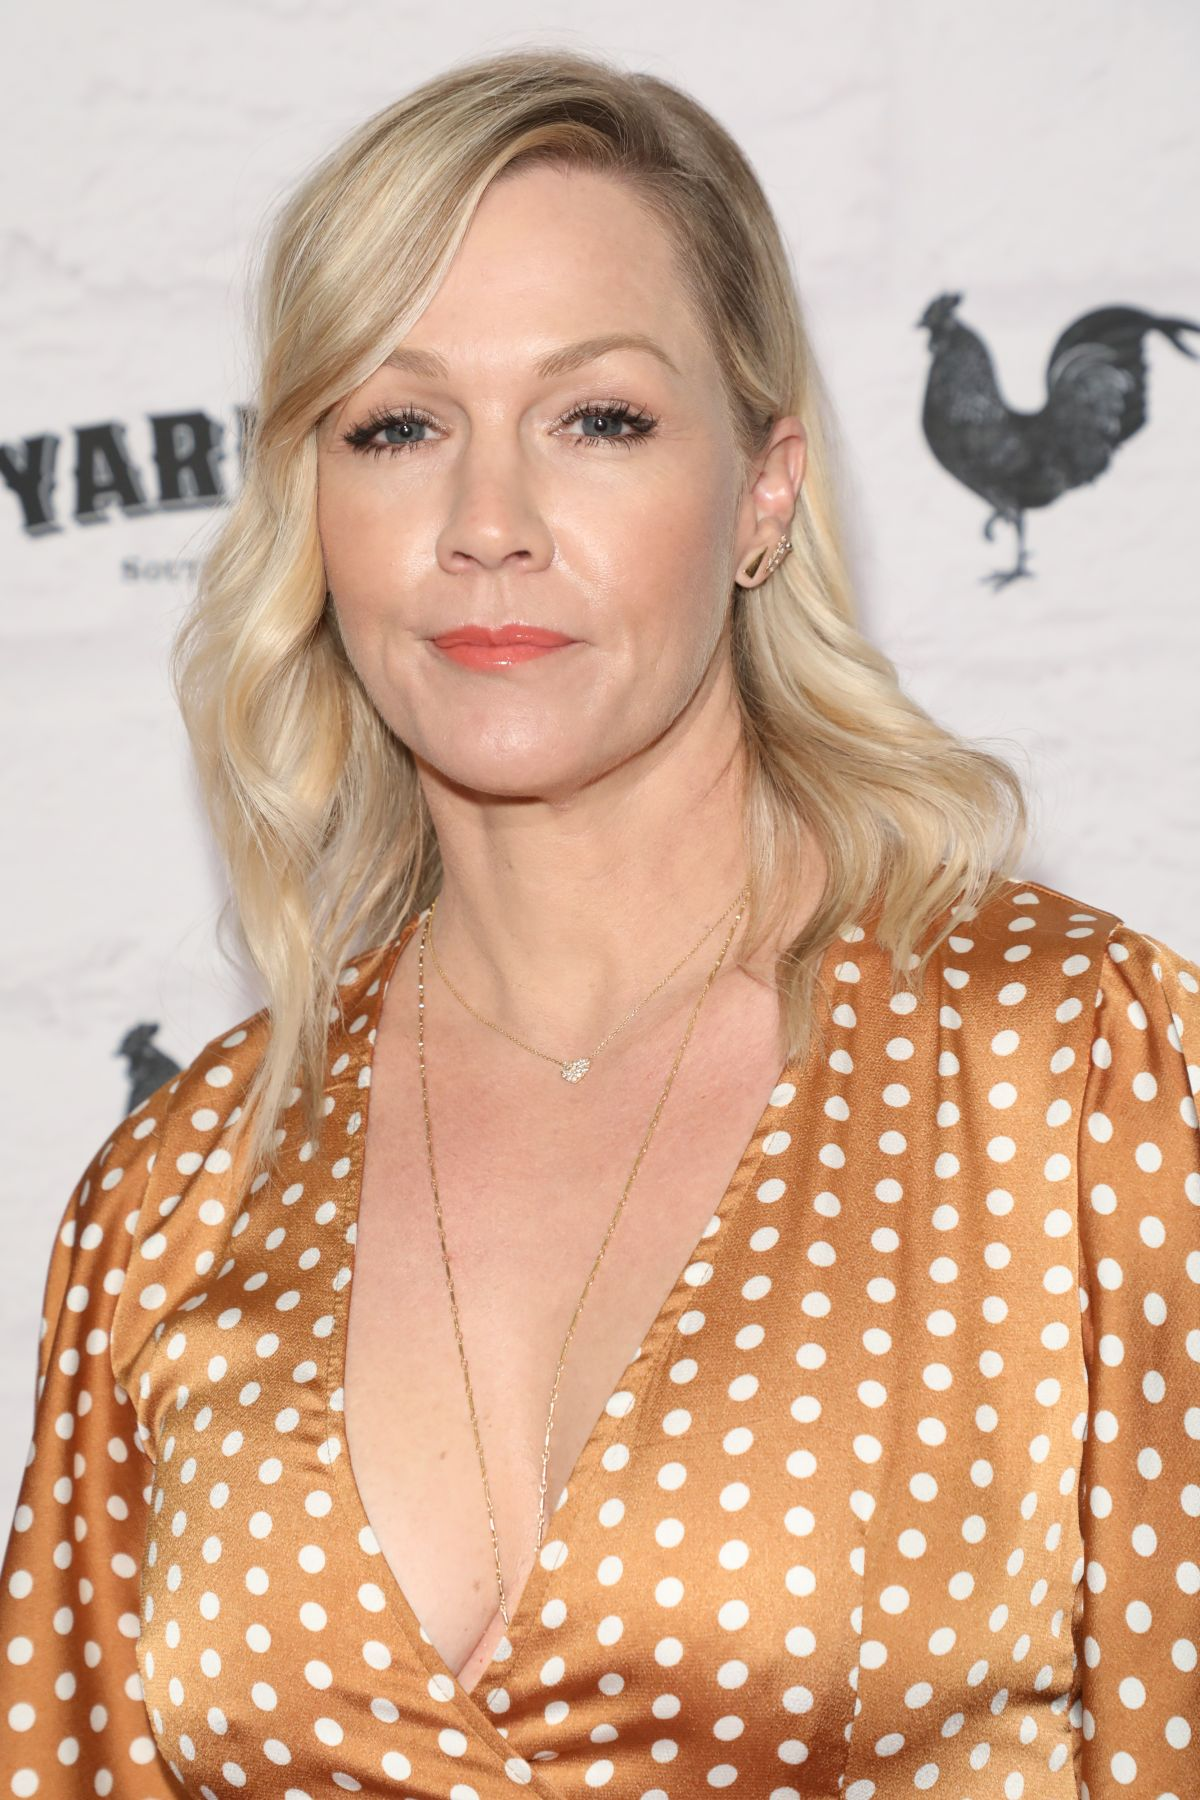 Jennie Garth Biography - Facts, Childhood, Family Life